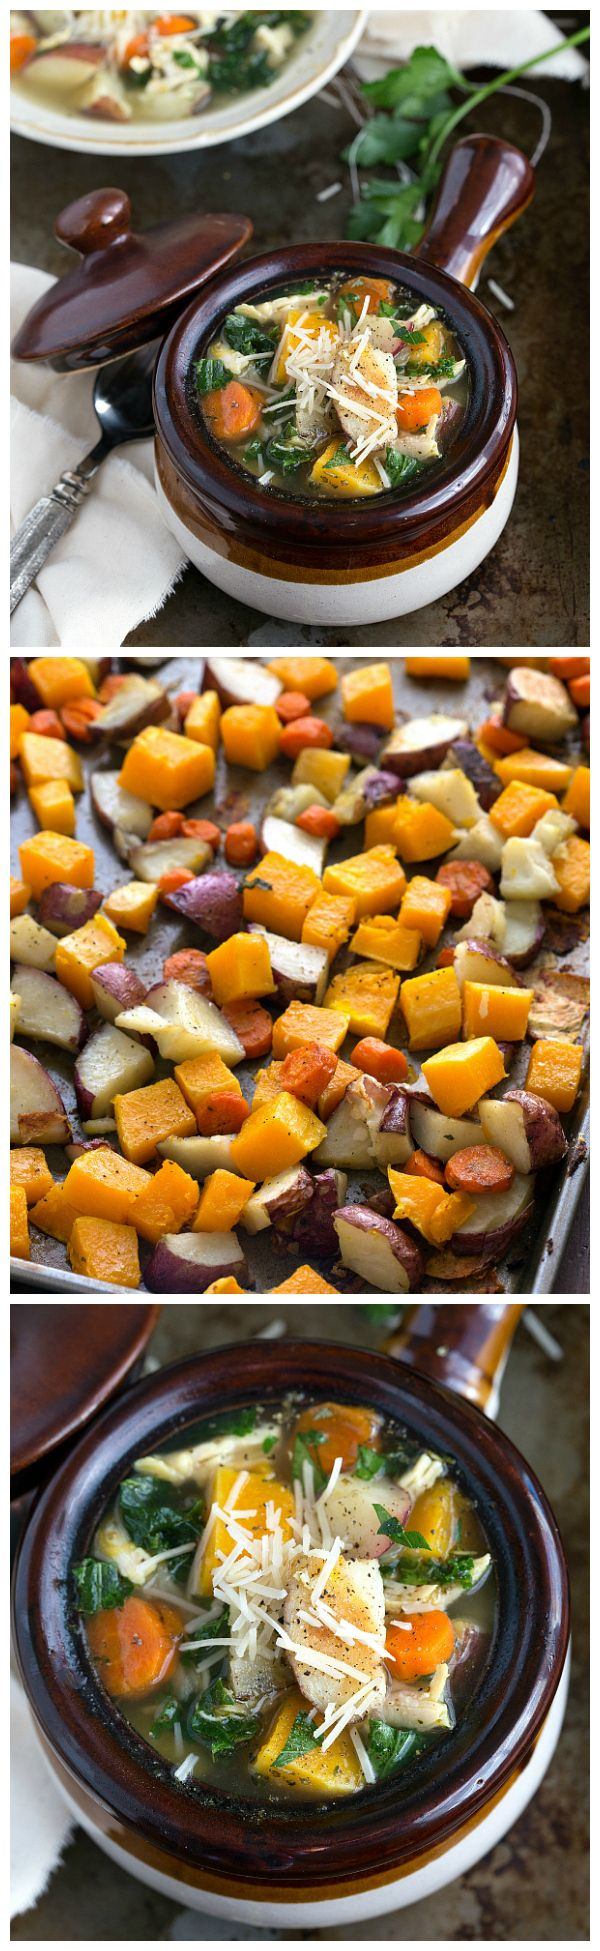 A healthy Roasted Butternut Squash, Red Potato, and Kale Soup #cleaneating #soup #butternutsquash